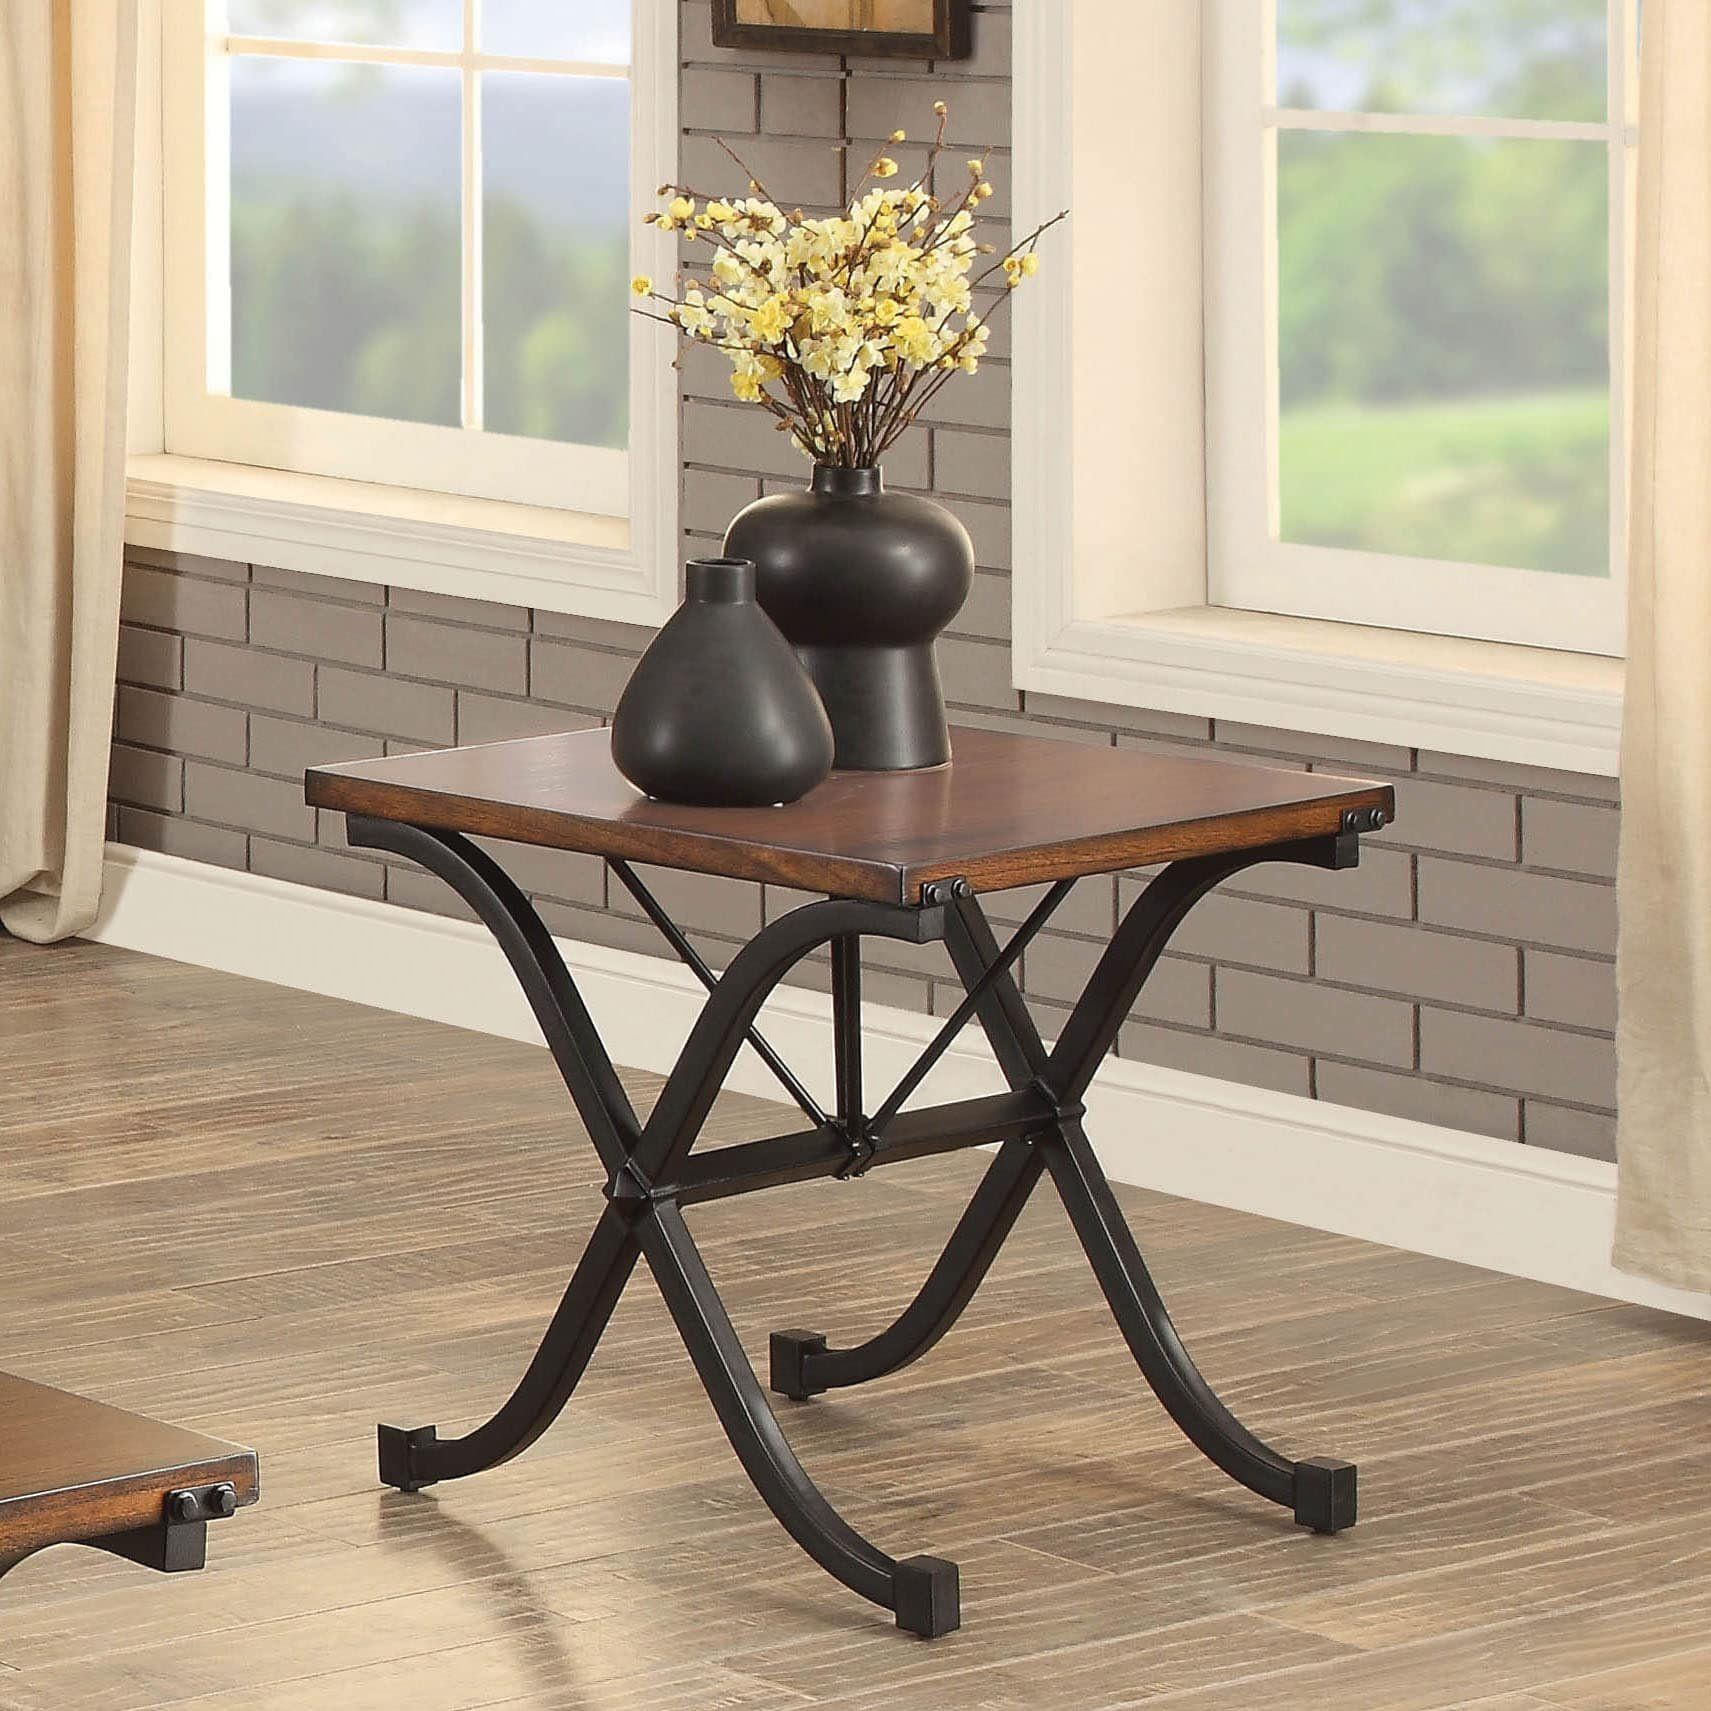 Furniture Of America Kesha Industrial 3piece Dark Oak Coffee And End Table Set Be Sure To Examine Out This Coffee And End Tables Furniture Of America Table [ 1711 x 1711 Pixel ]